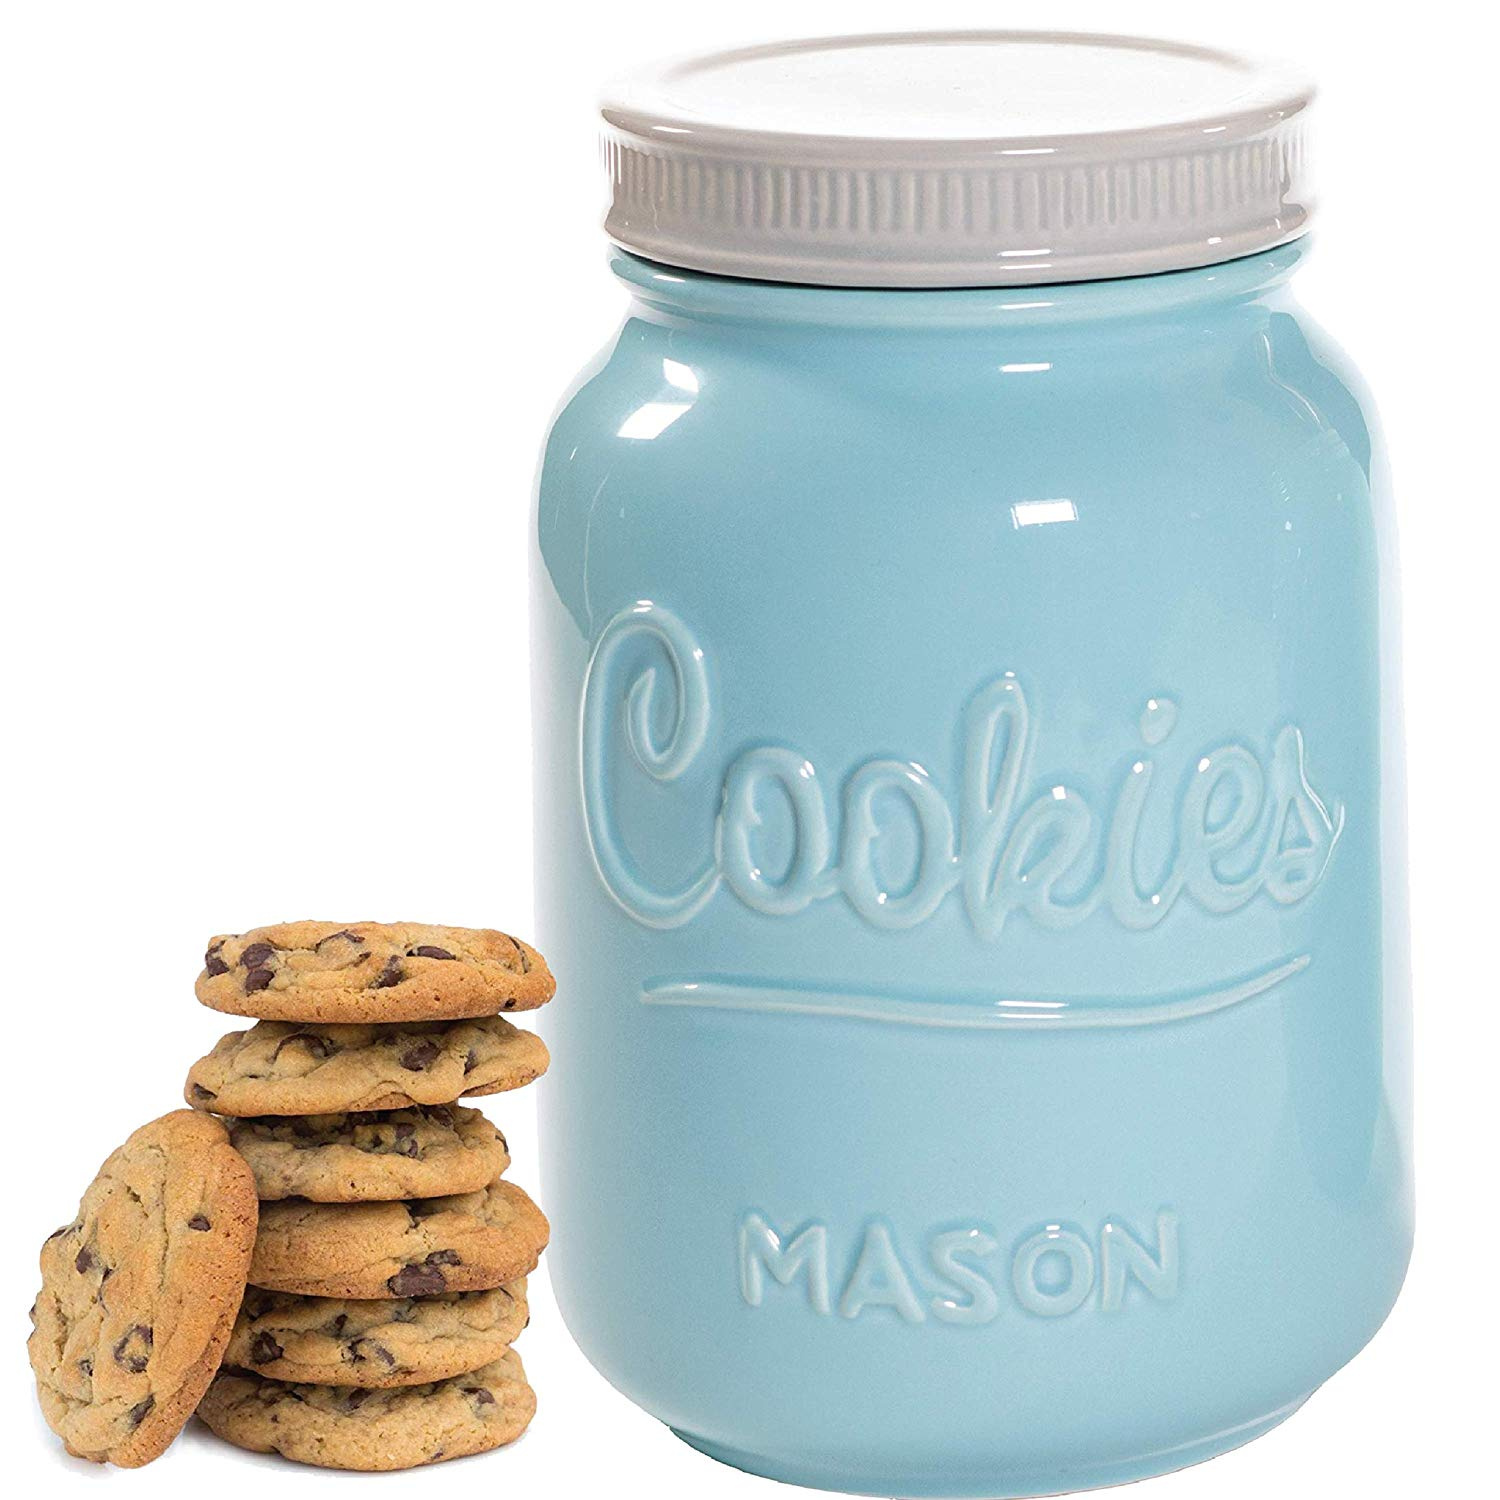 Blue and Other Snacks Vintage Farmhouse Storage Jars with Lids Rustic Decorative Air Tight Container For Cookies Large Airtight Ceramic Kitchen Canister Cracker Mason Cookie Jar With Lid